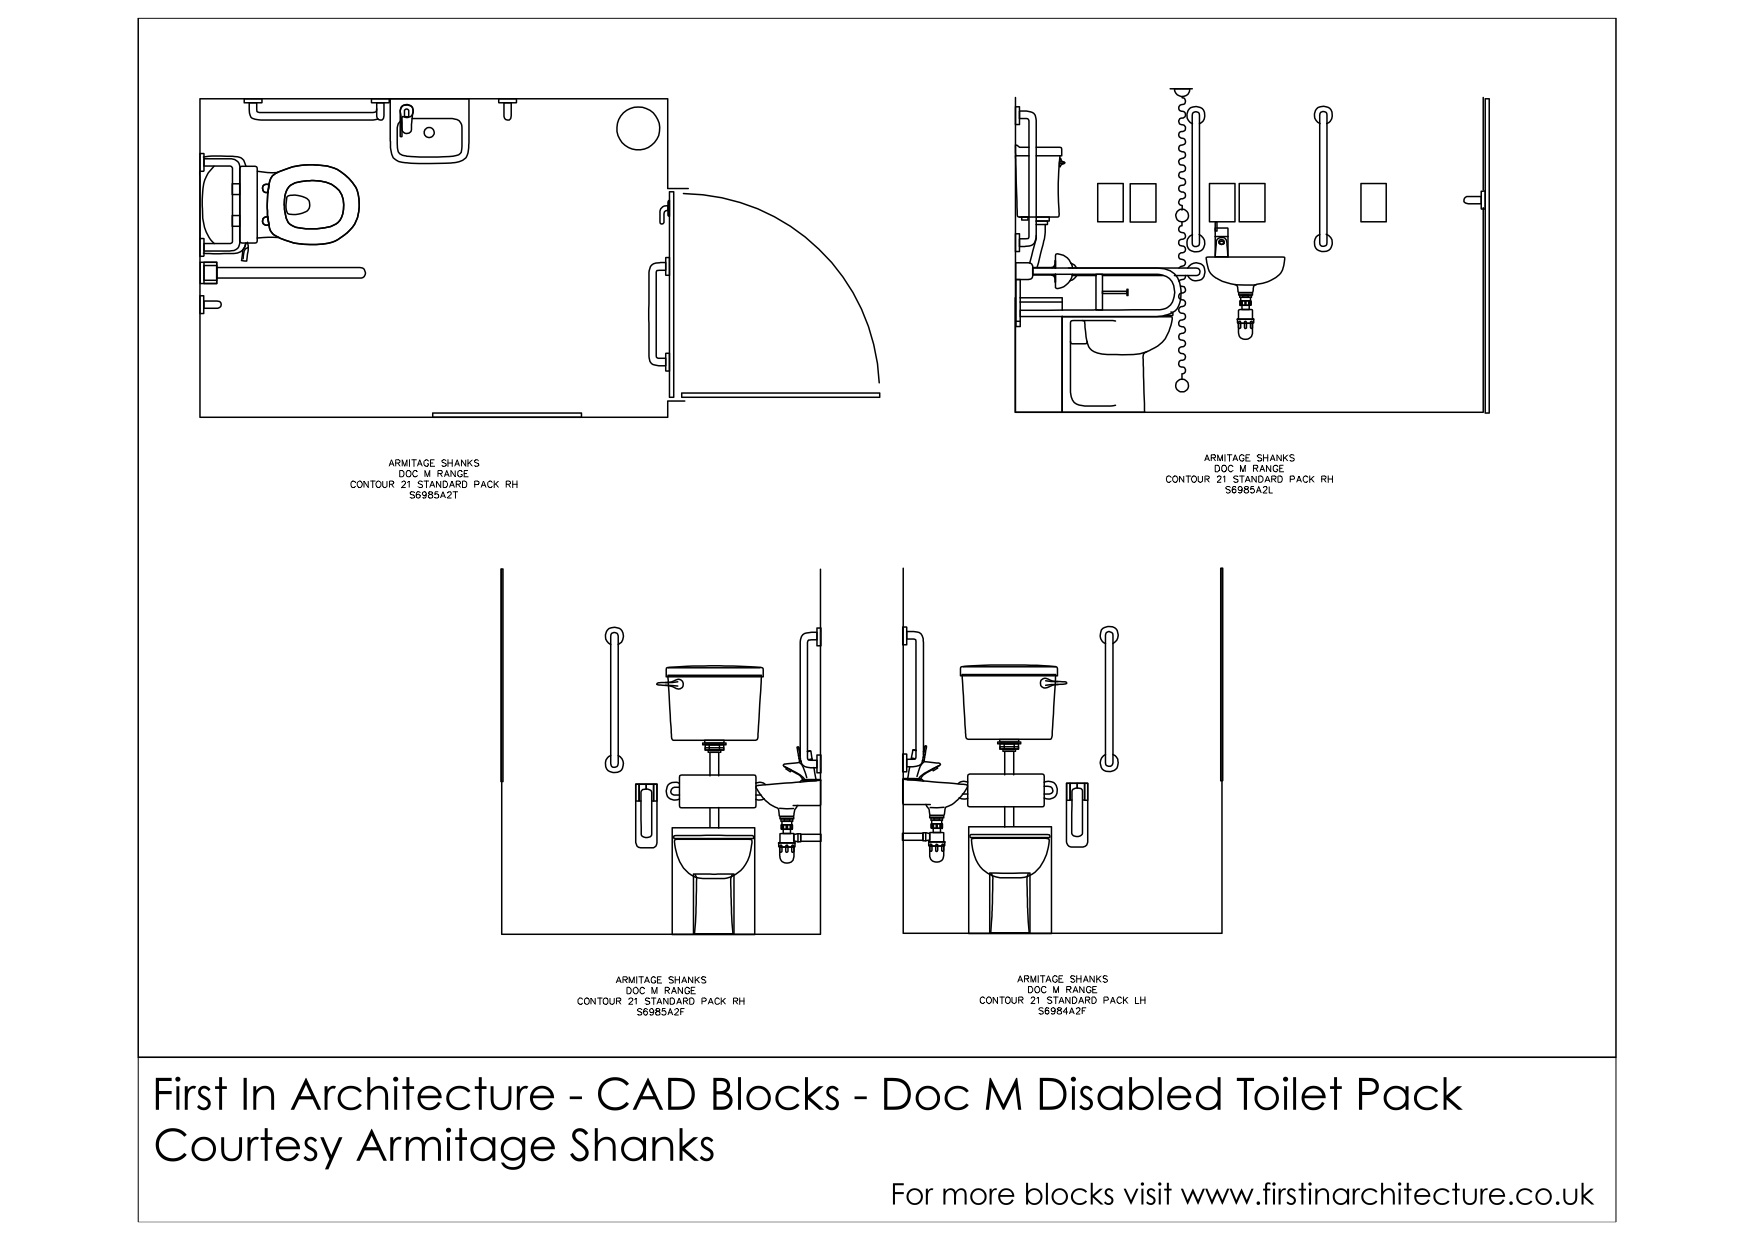 Front Elevation Of Bathtub : Free cad blocks doc m disabled toilet